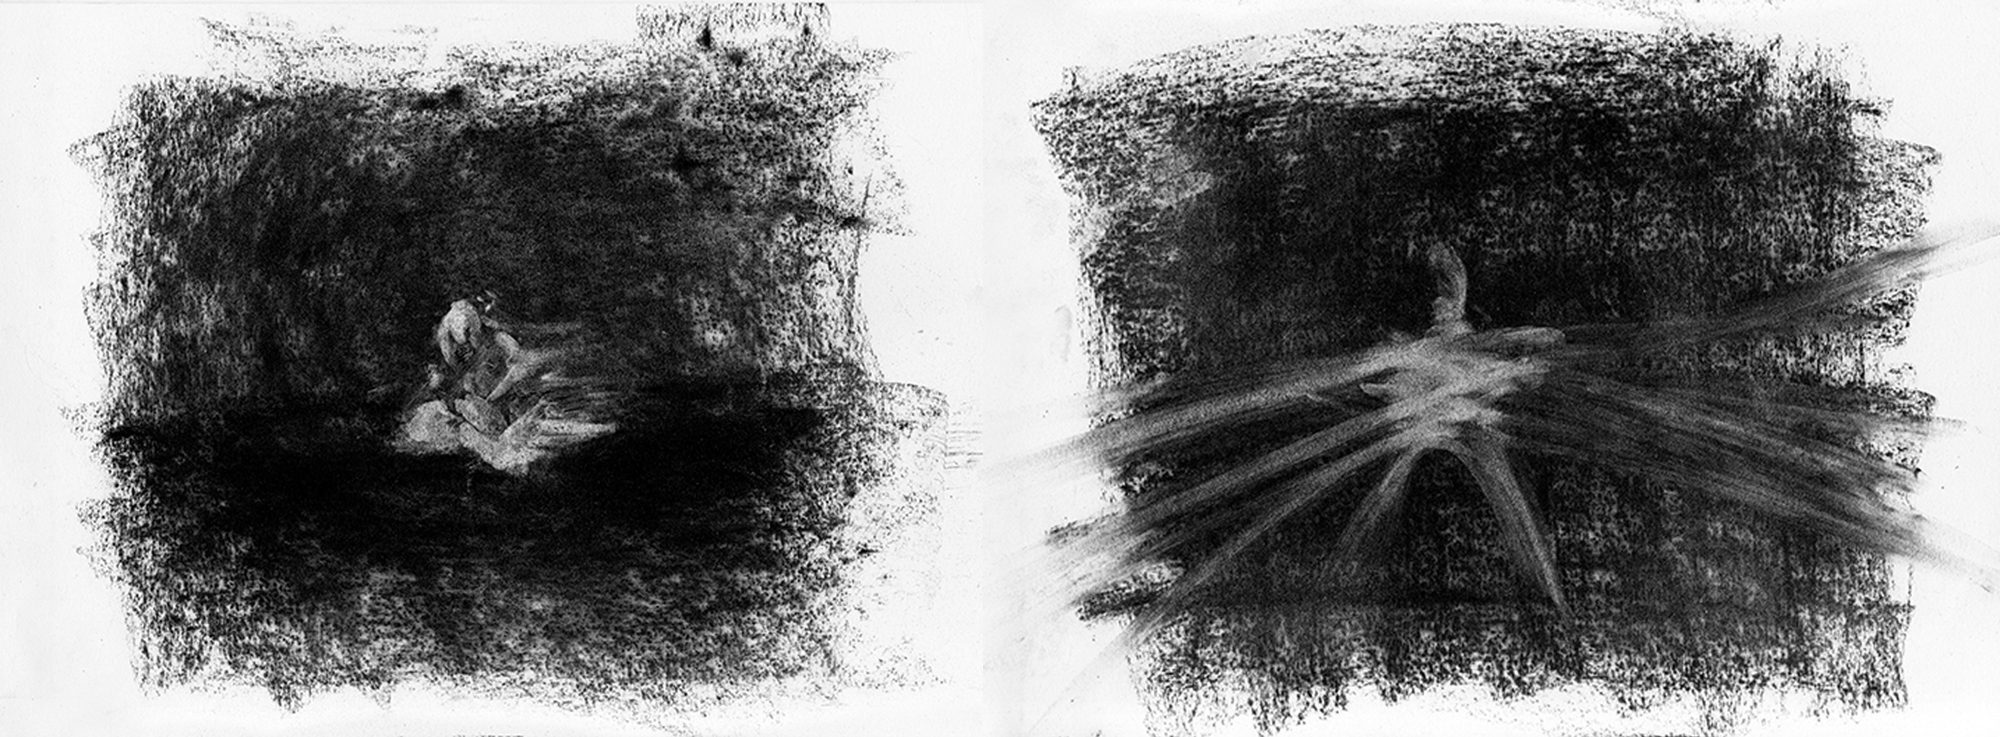 Sketches for emotive states: waxing and waning by Argyris Angeli.